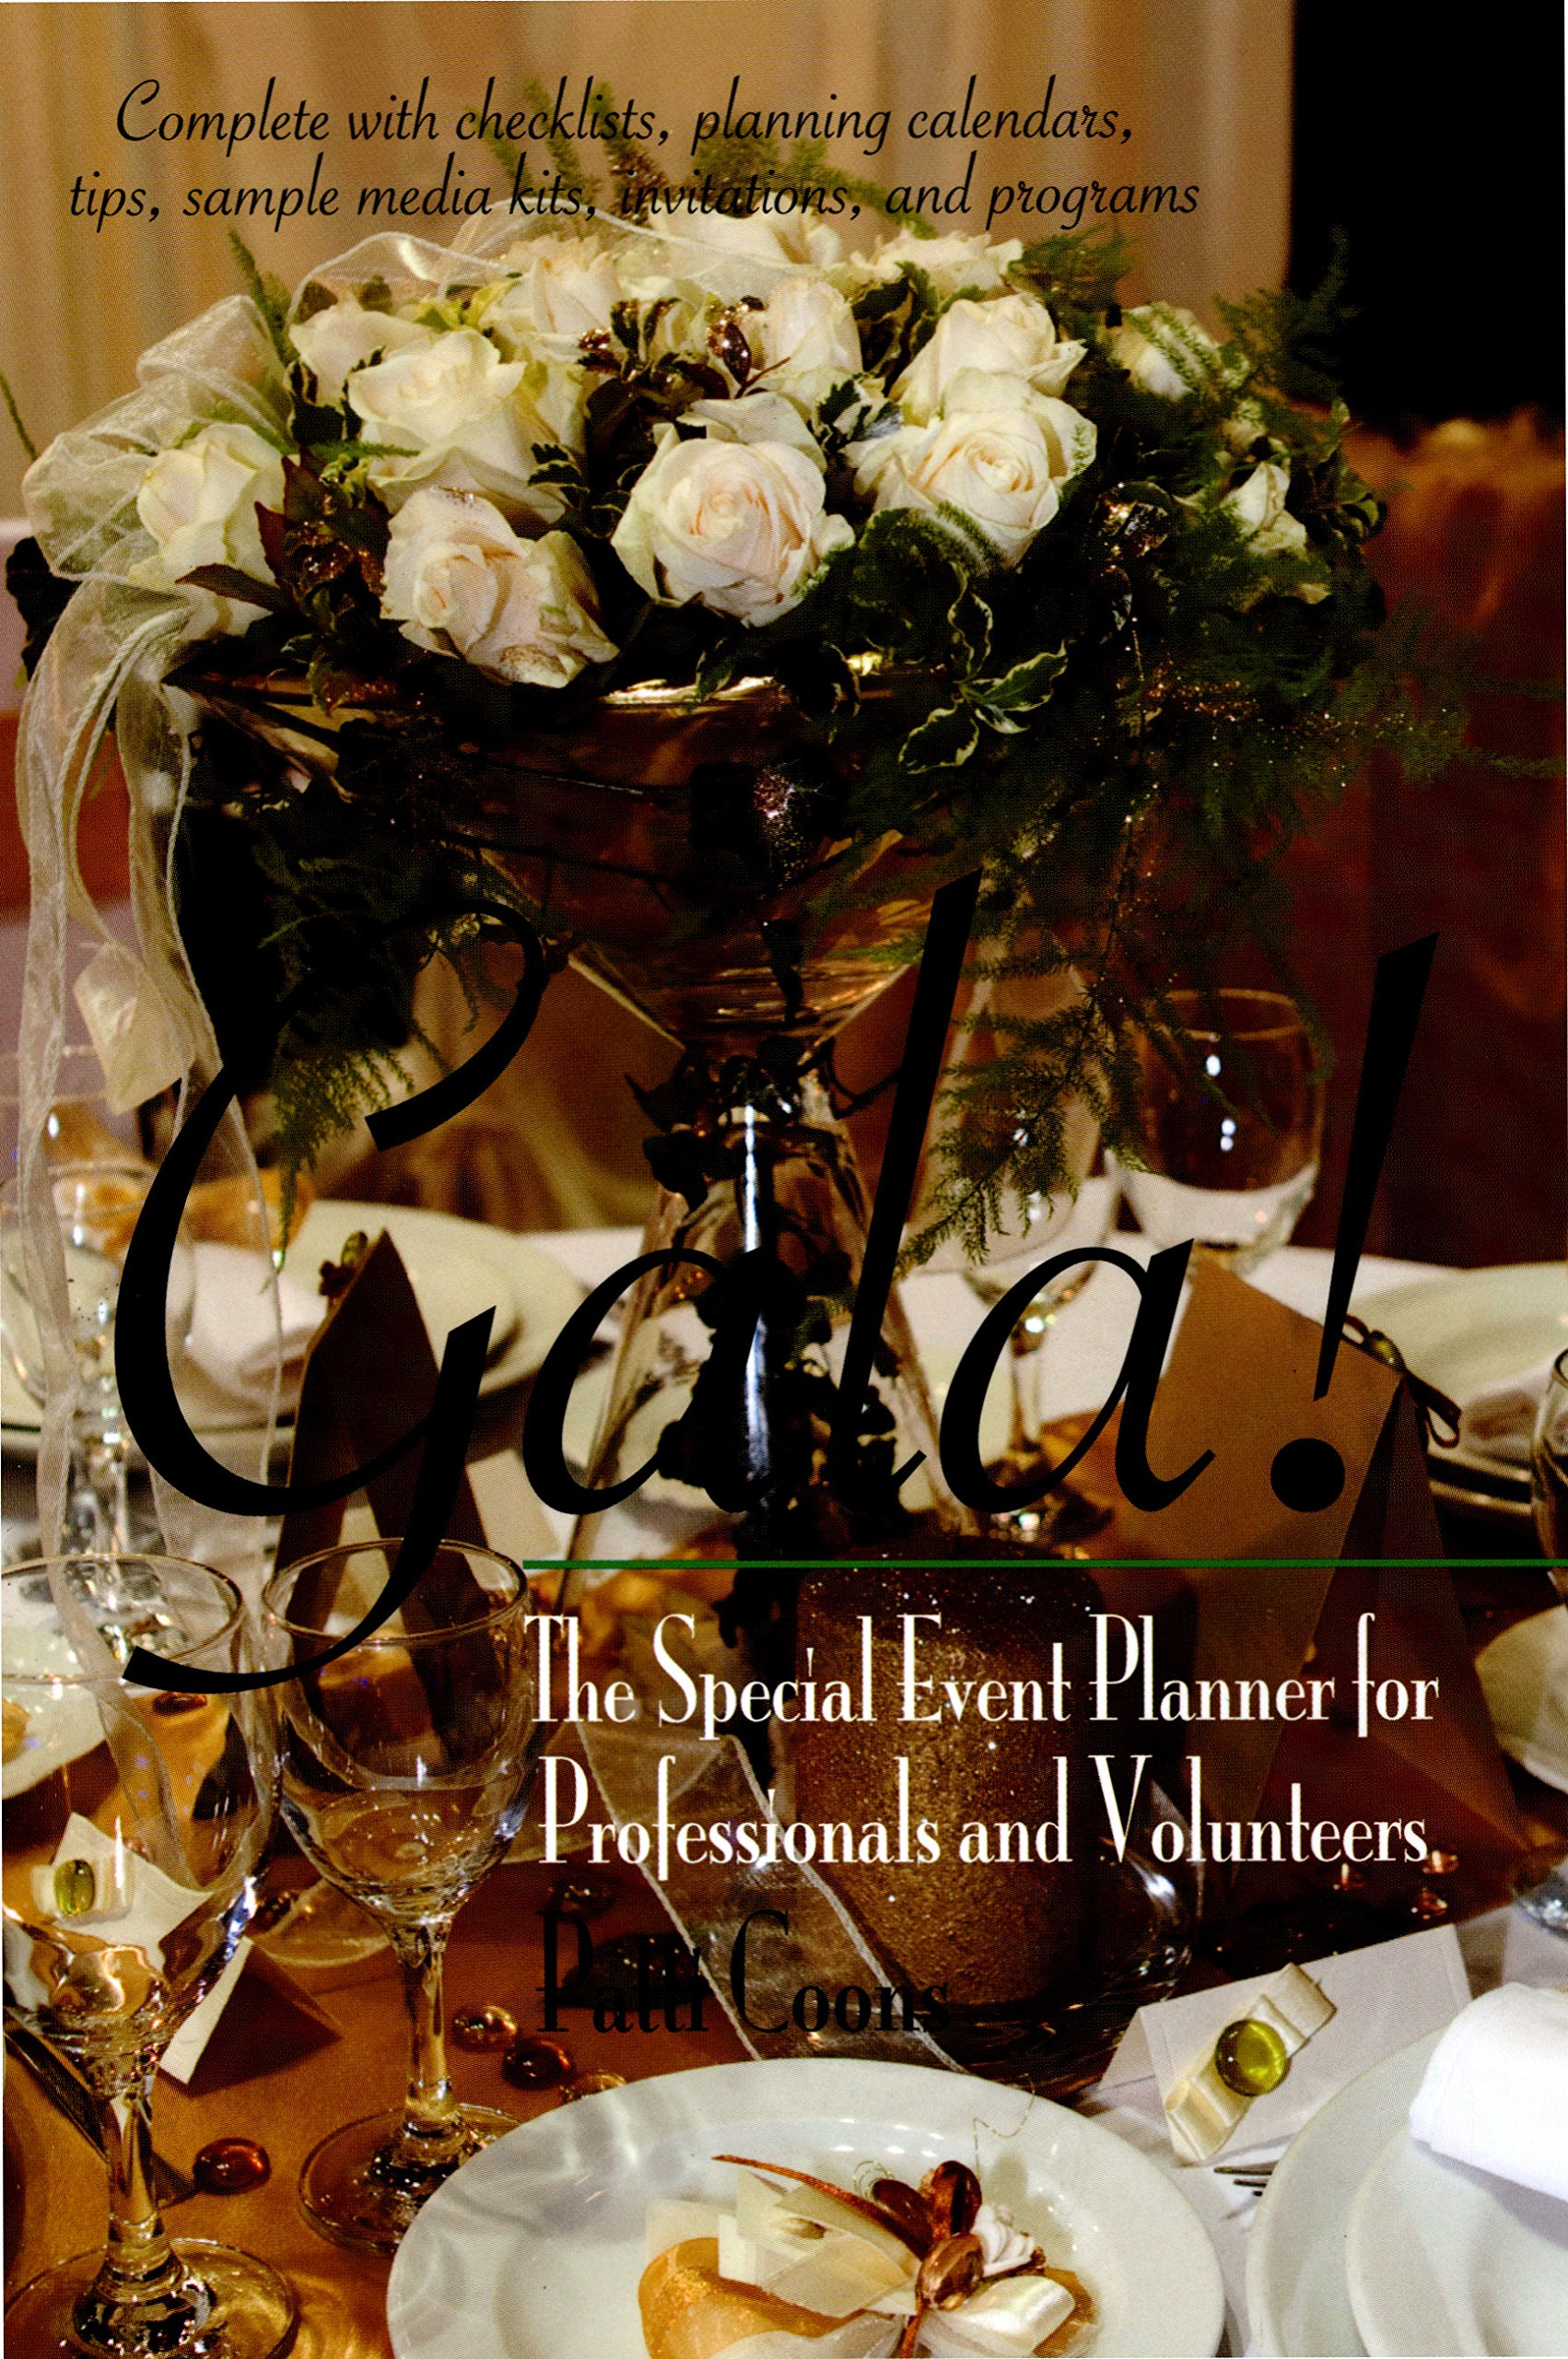 Gala!: The Special Event Planner for Professionals and Volunteers (Capital Ideas)